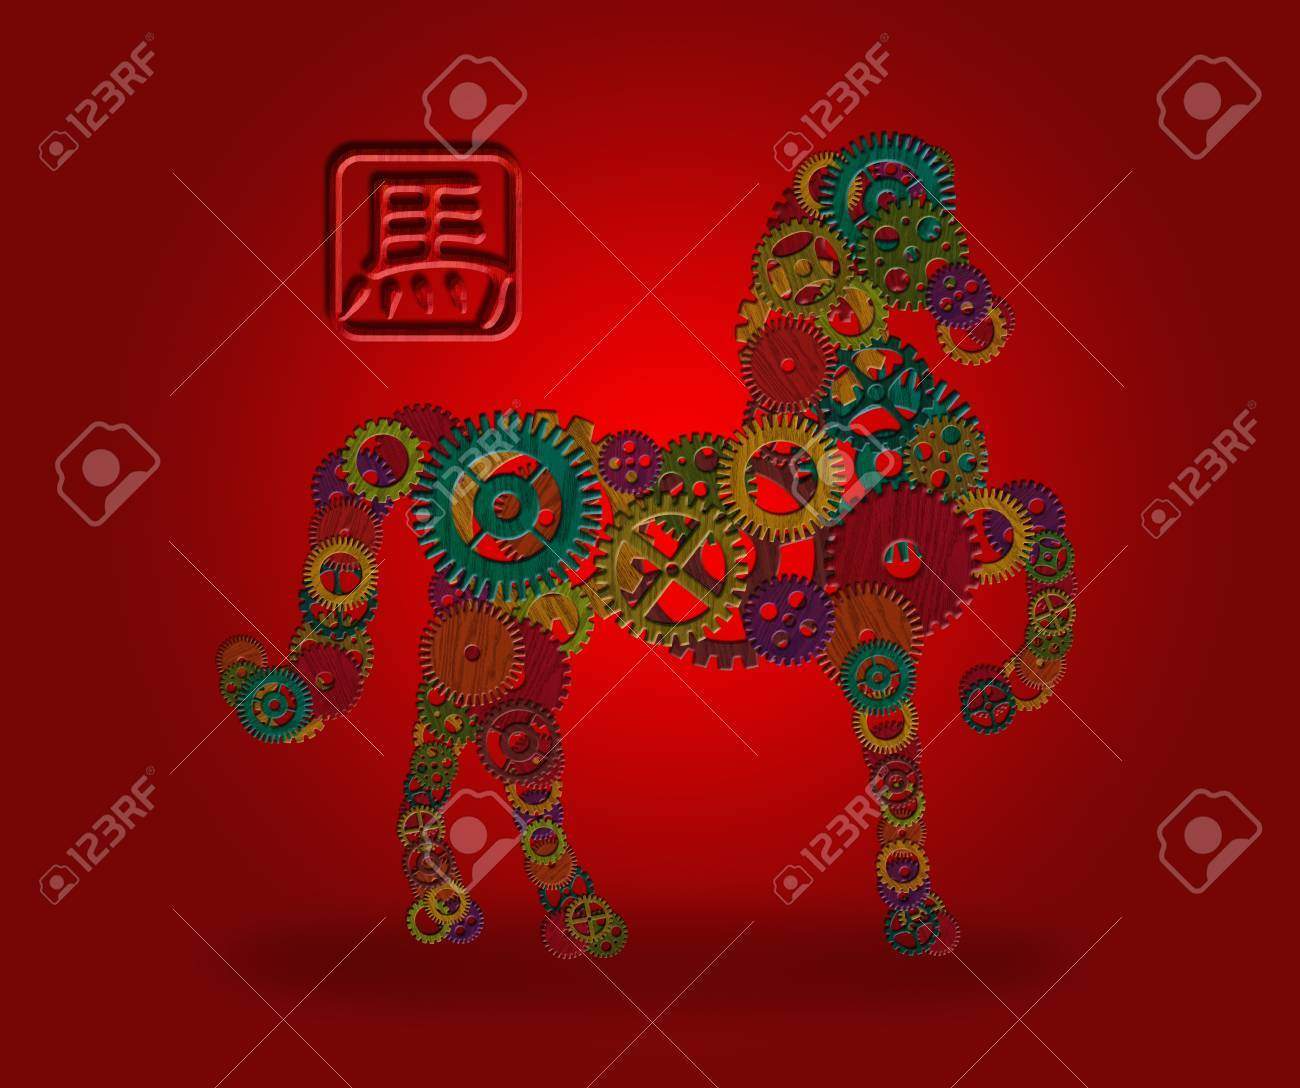 2014 chinese lunar new year of the horse wood gear element forward pose silhouette with horse - Chinese New Year 2014